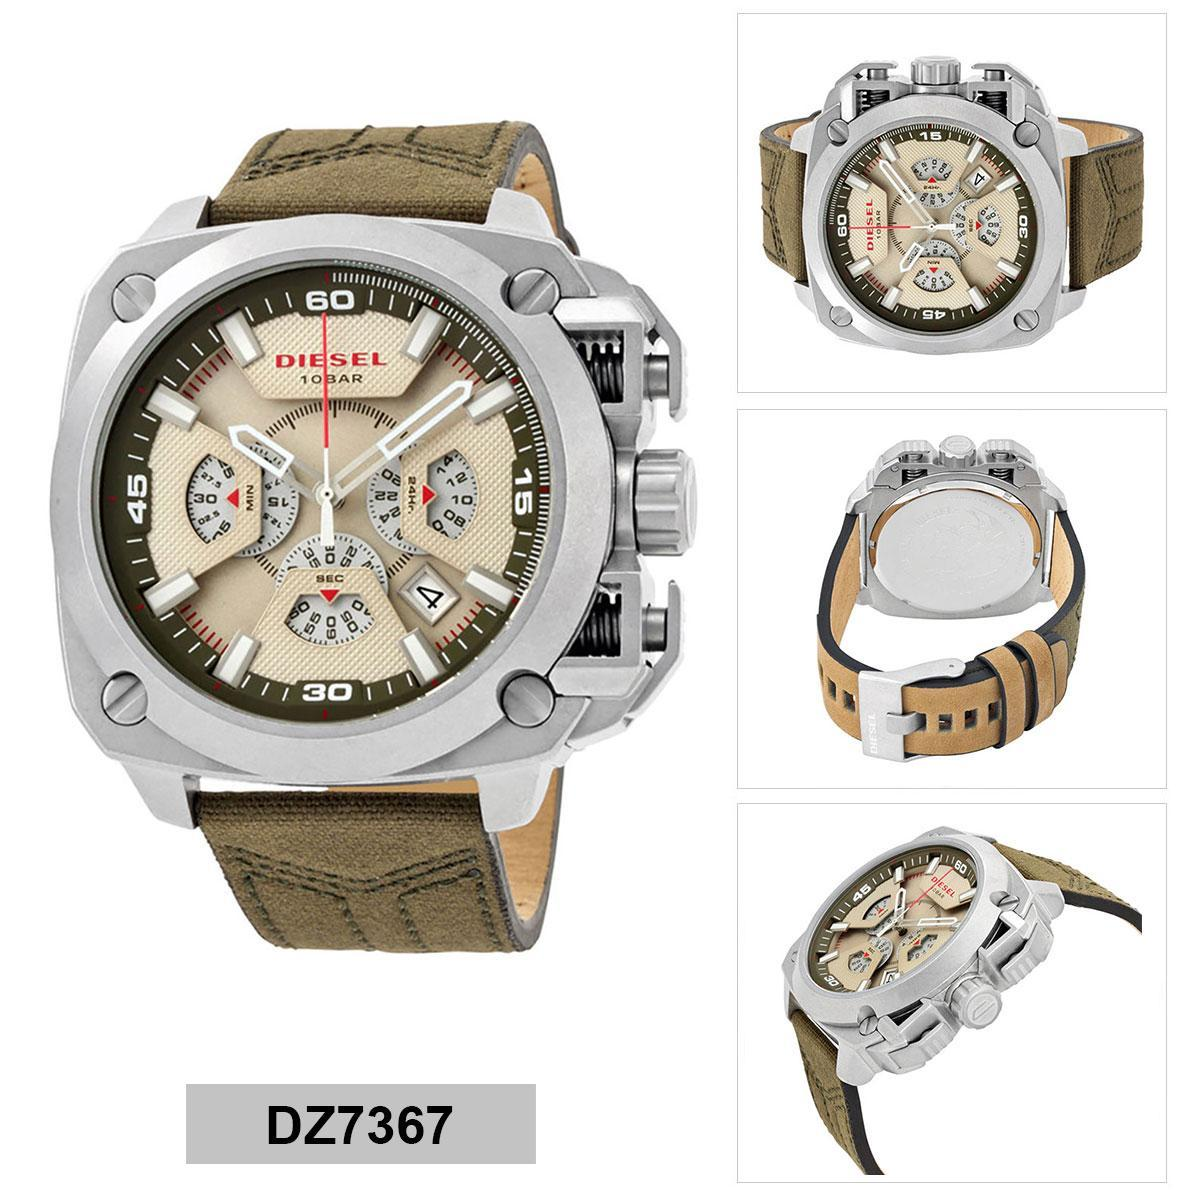 ยโสธร Authentic Diesel BAMF Green Stainless-Steel Case Leather Strap Mens DZ7367 2 Years Warranty